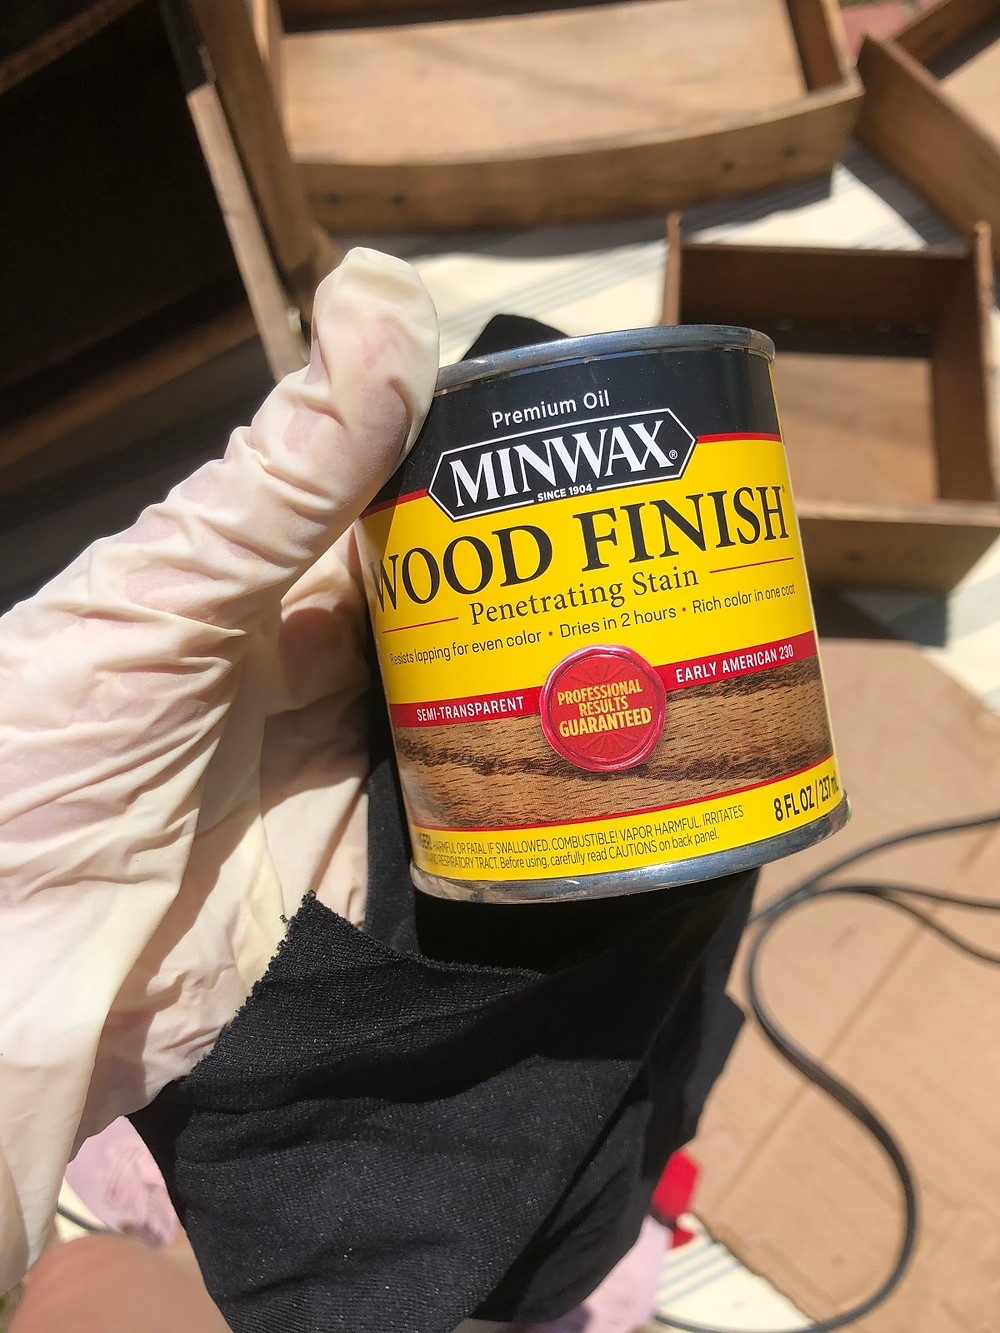 Minwax Wood Finish Penetrating Stain in the color Early American.